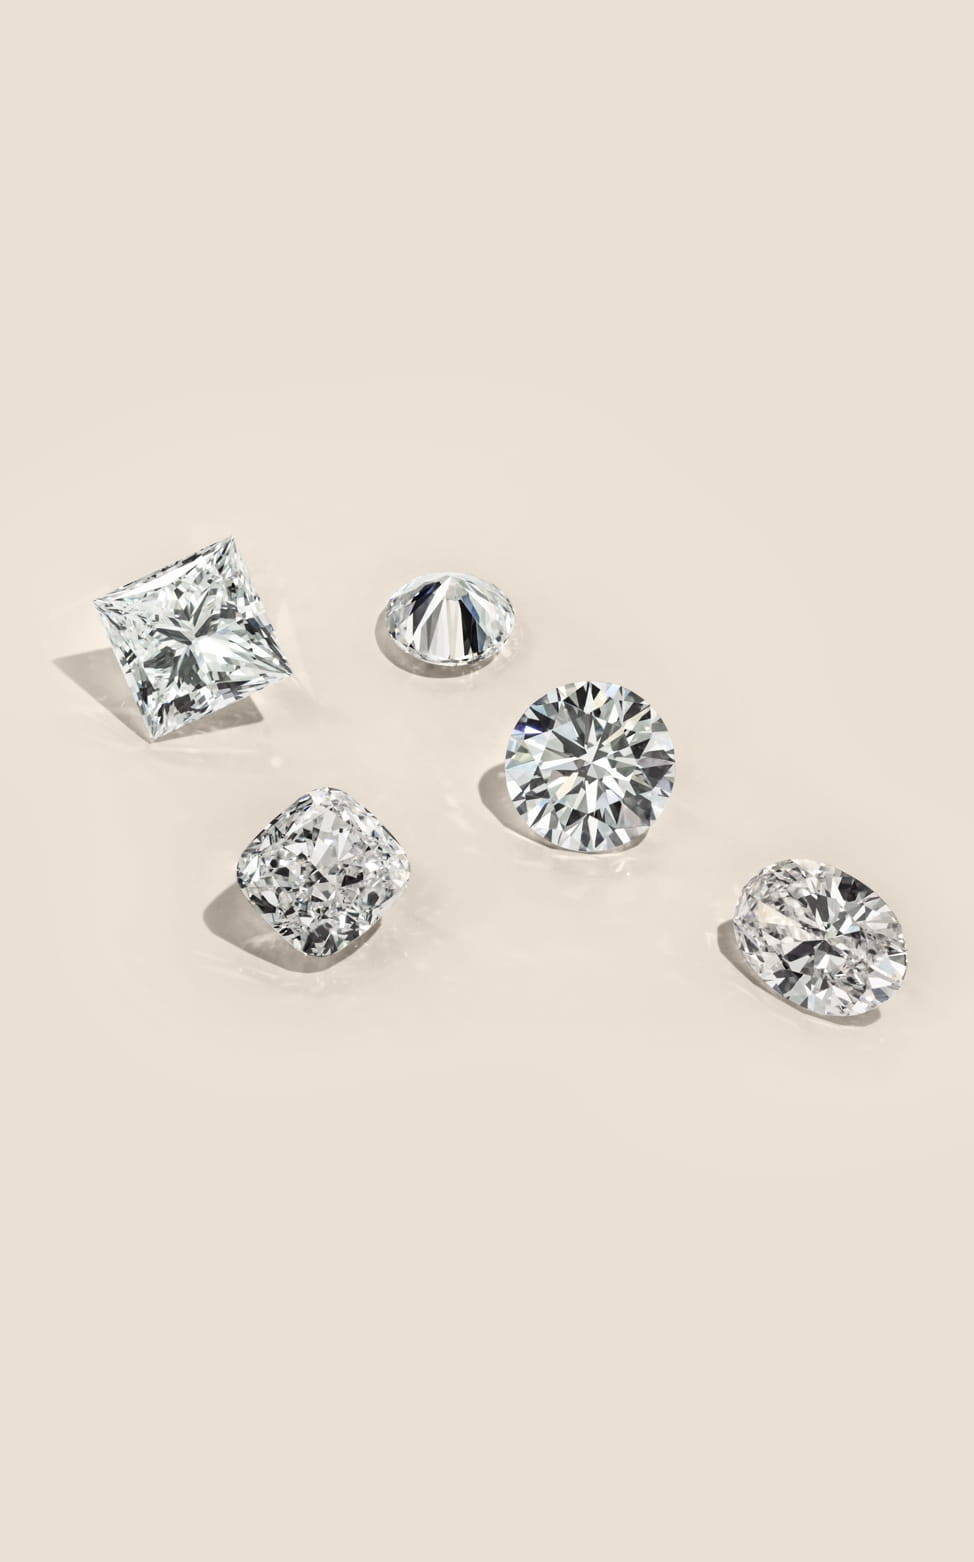 Shop loose lab grown diamonds